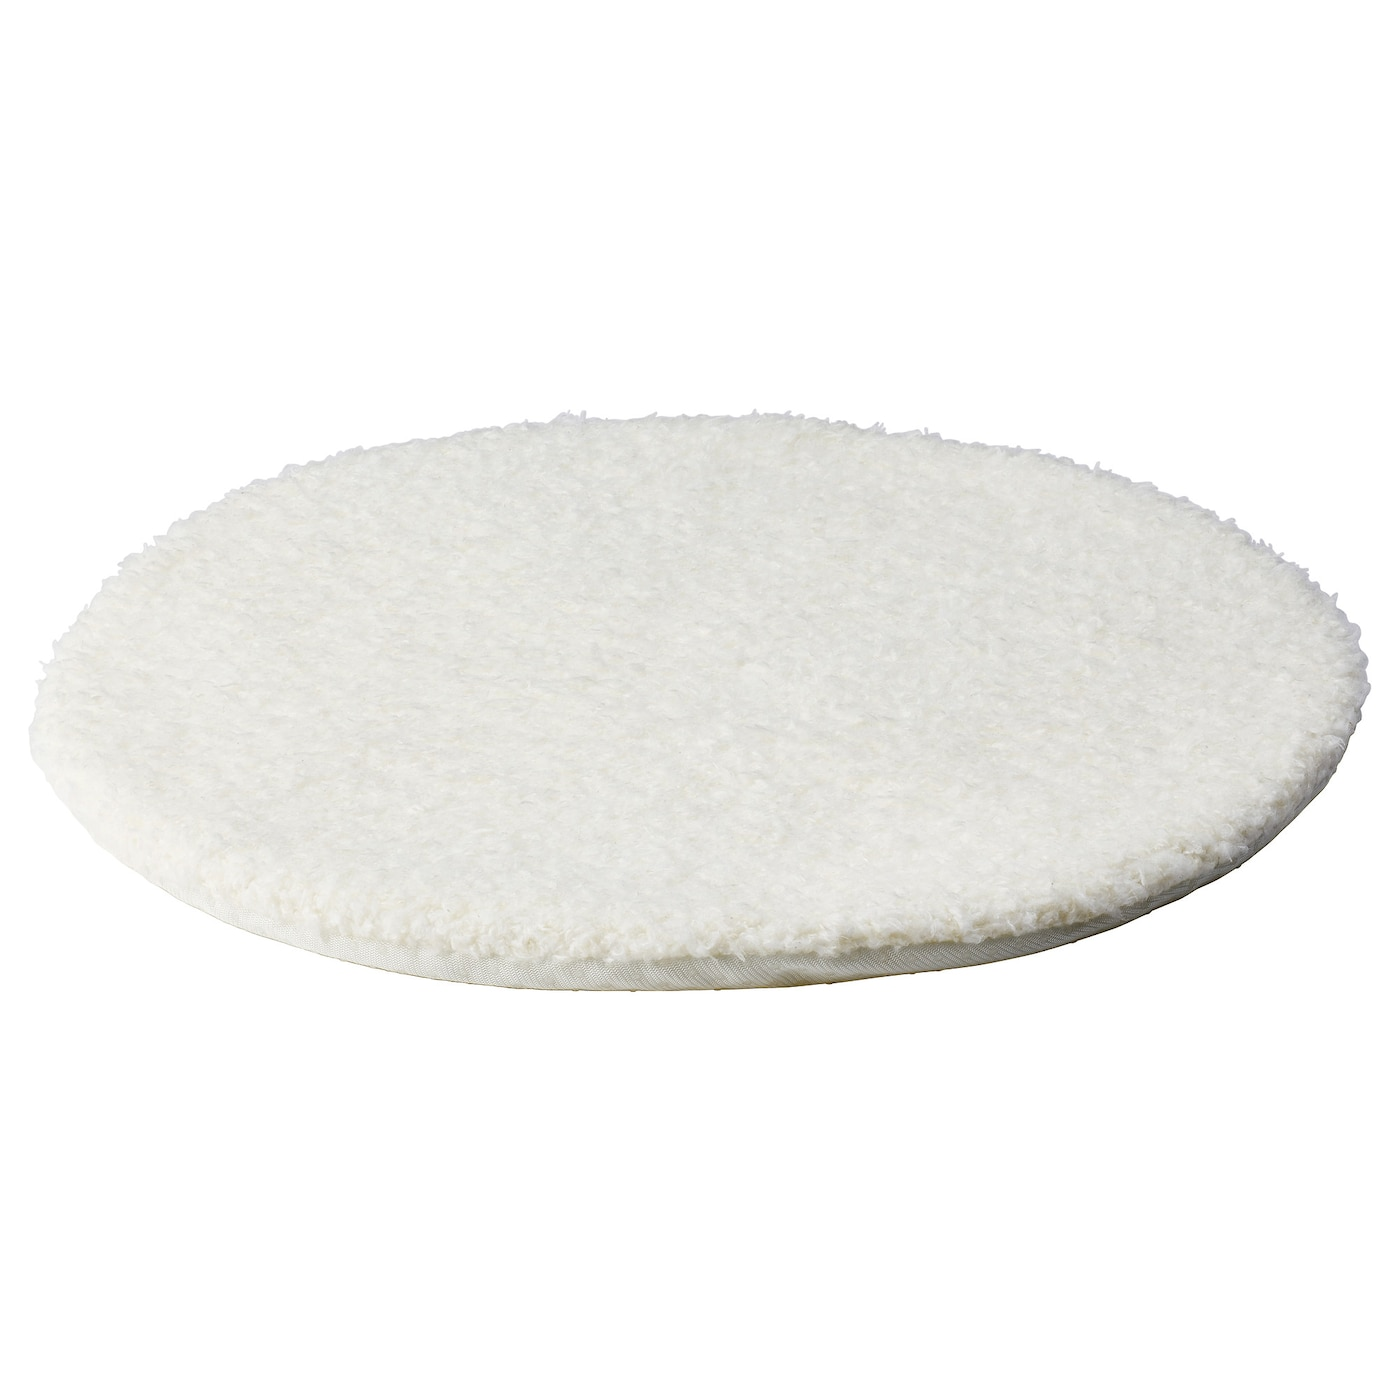 Merveilleux IKEA BERTIL Chair Pad Polyurethane Foam Provides Great Comfort And  Long Lasting Support.